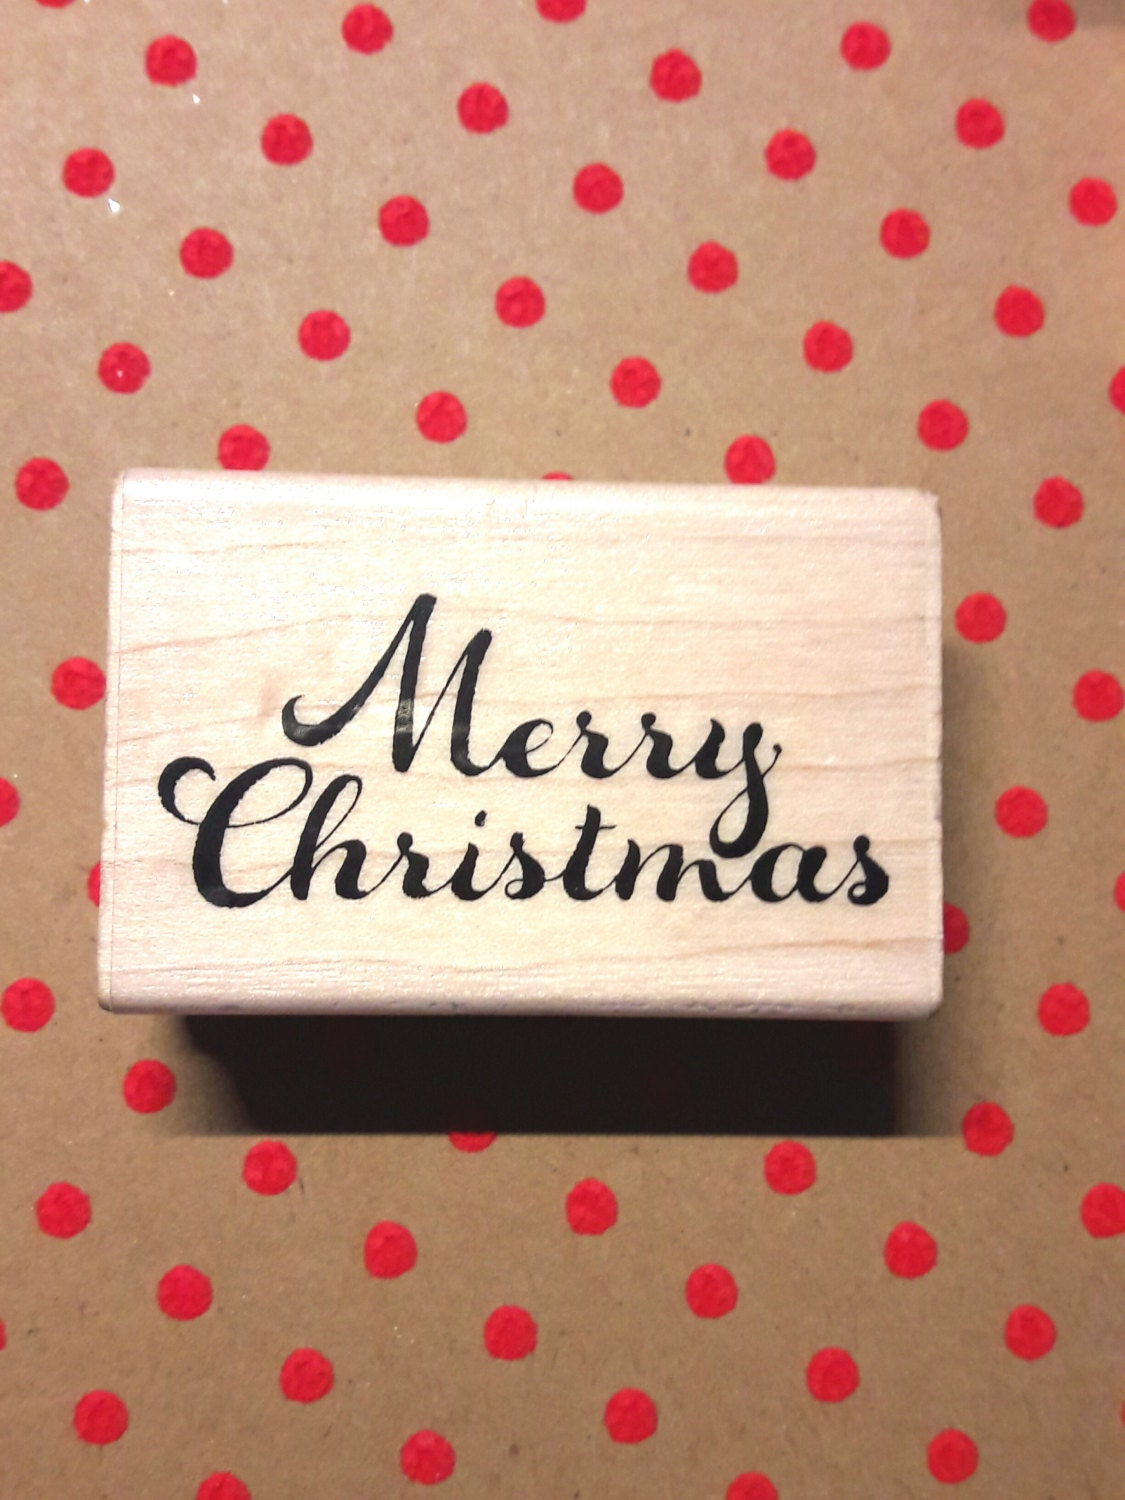 Rubber stamp craft supplies - Merry Christmas Holiday Wood Mounted Rubber Stamp Craft Supplies